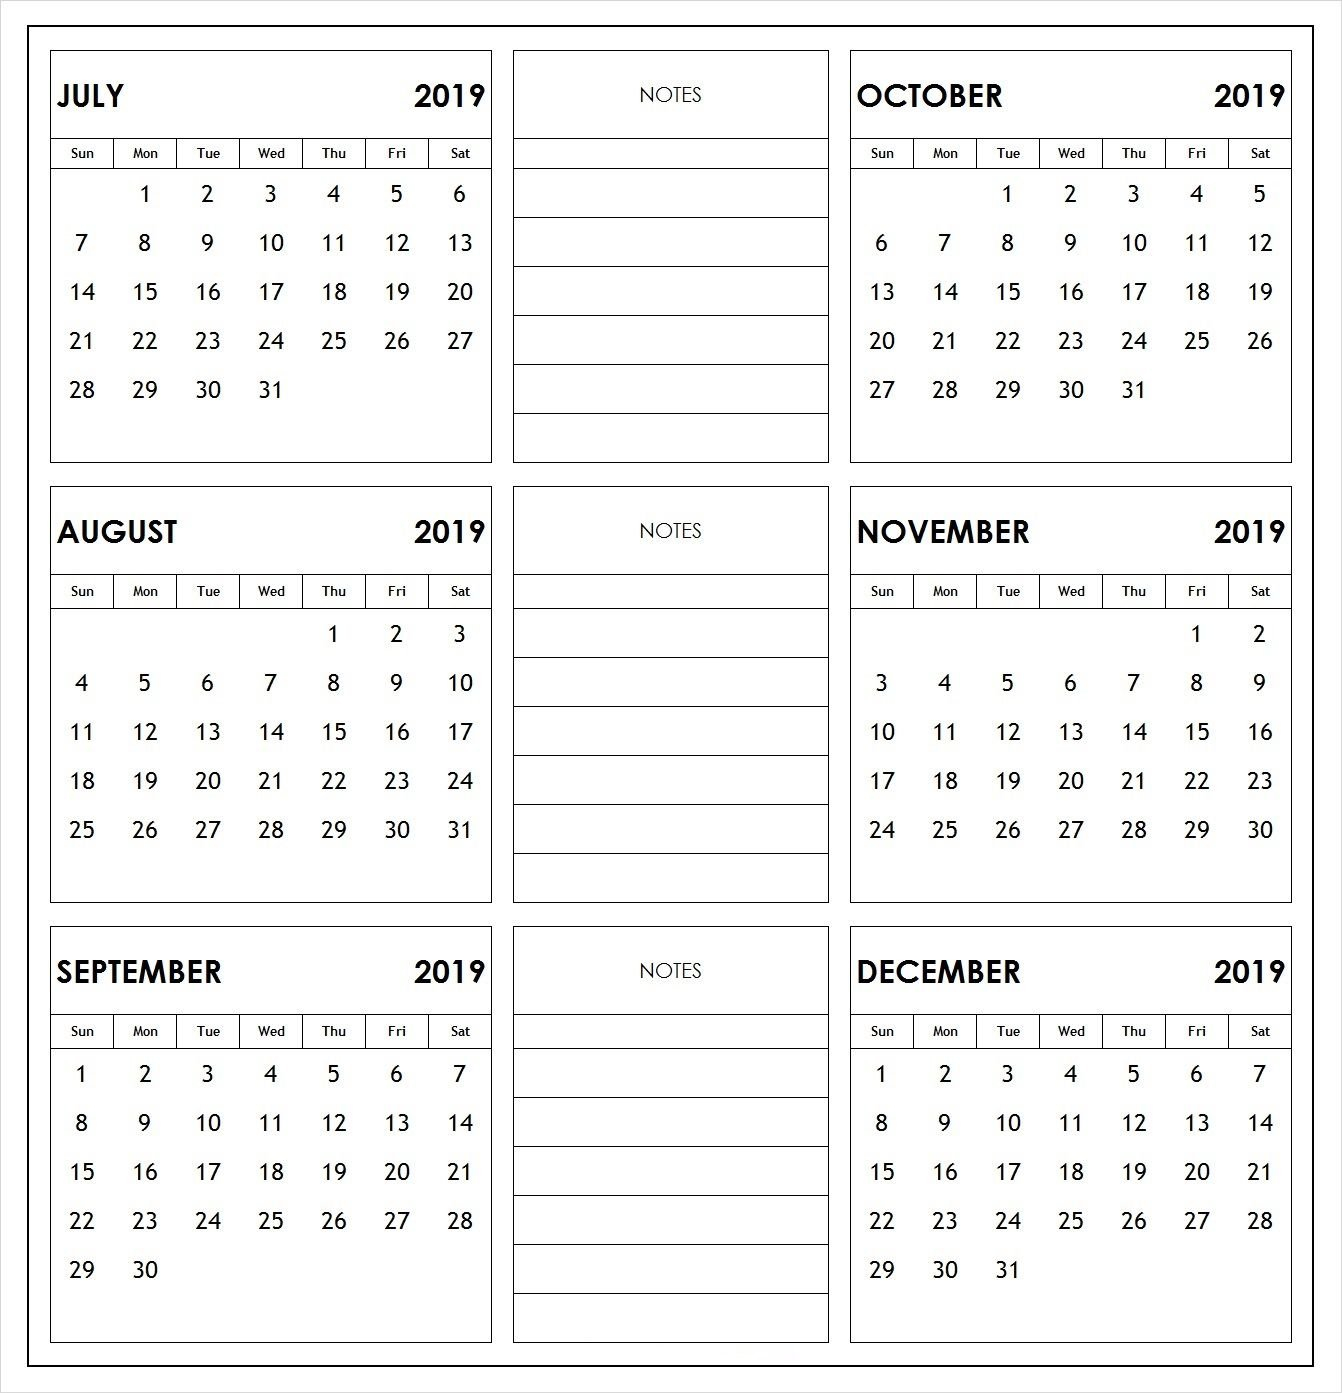 2019 Half Year Print Calendar | 2019 Calendars | Academic Calendar January 6 2019 Calendar